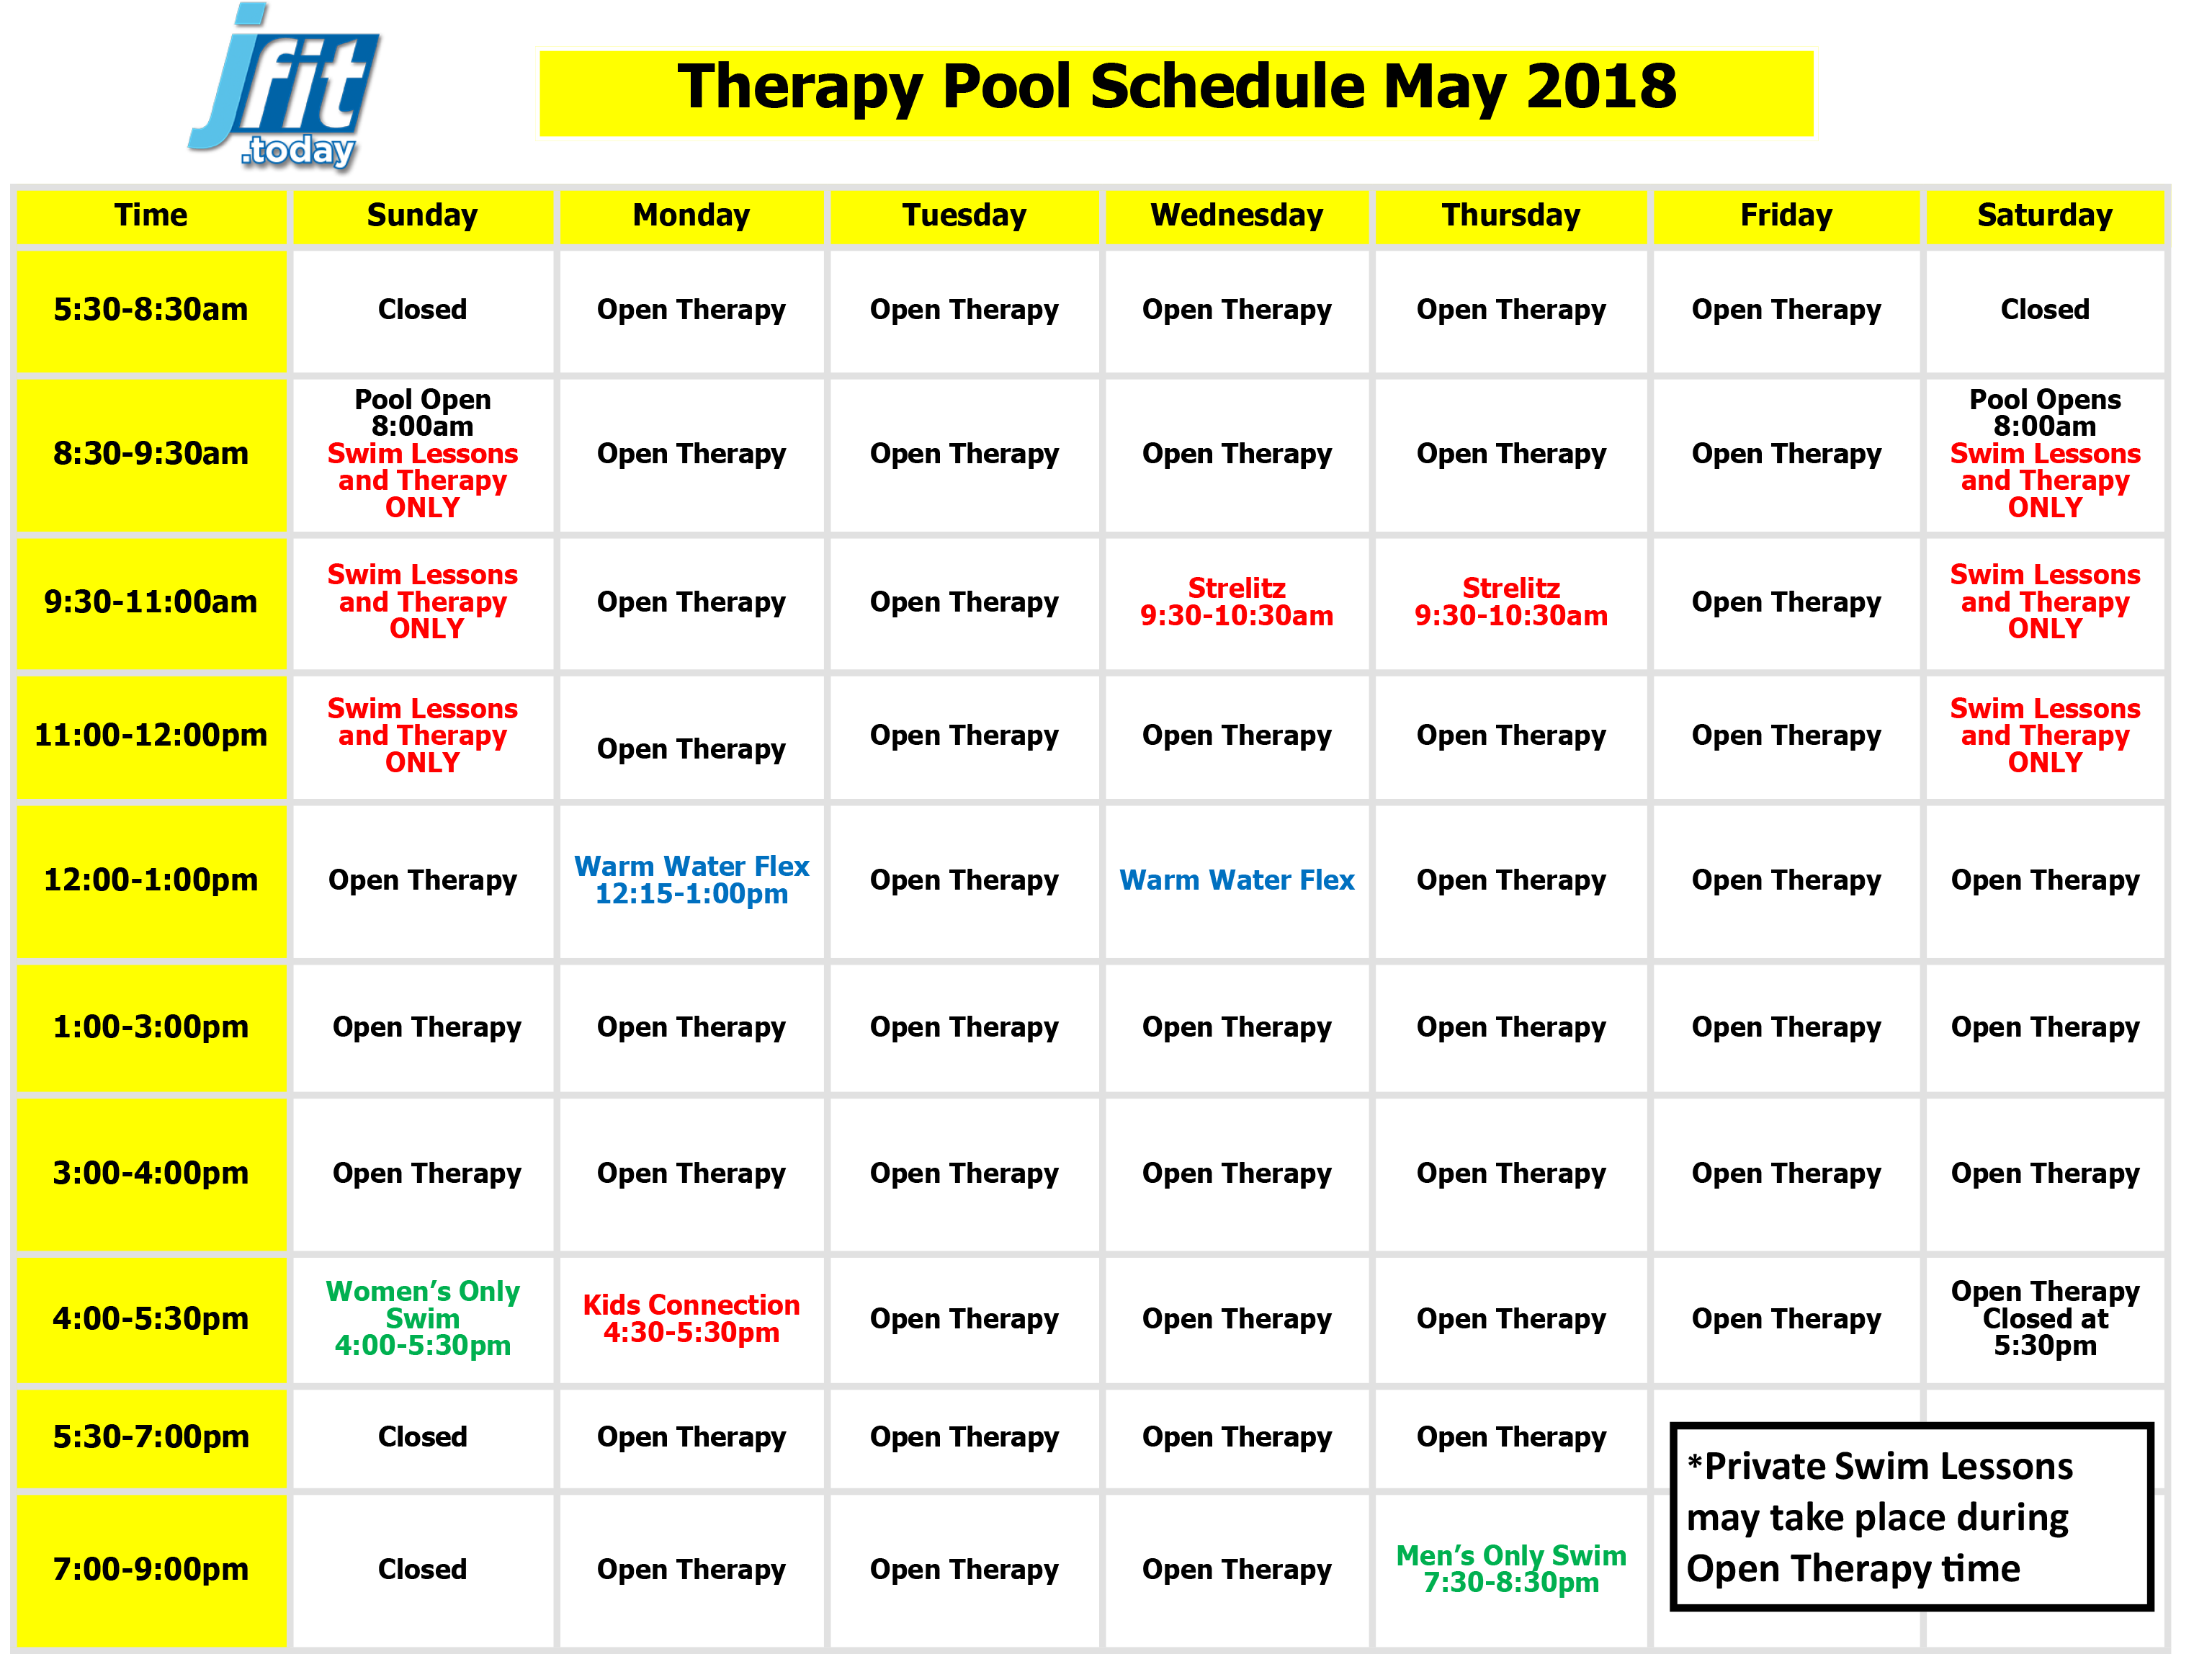 April 2018 Therapy Pool Schedule